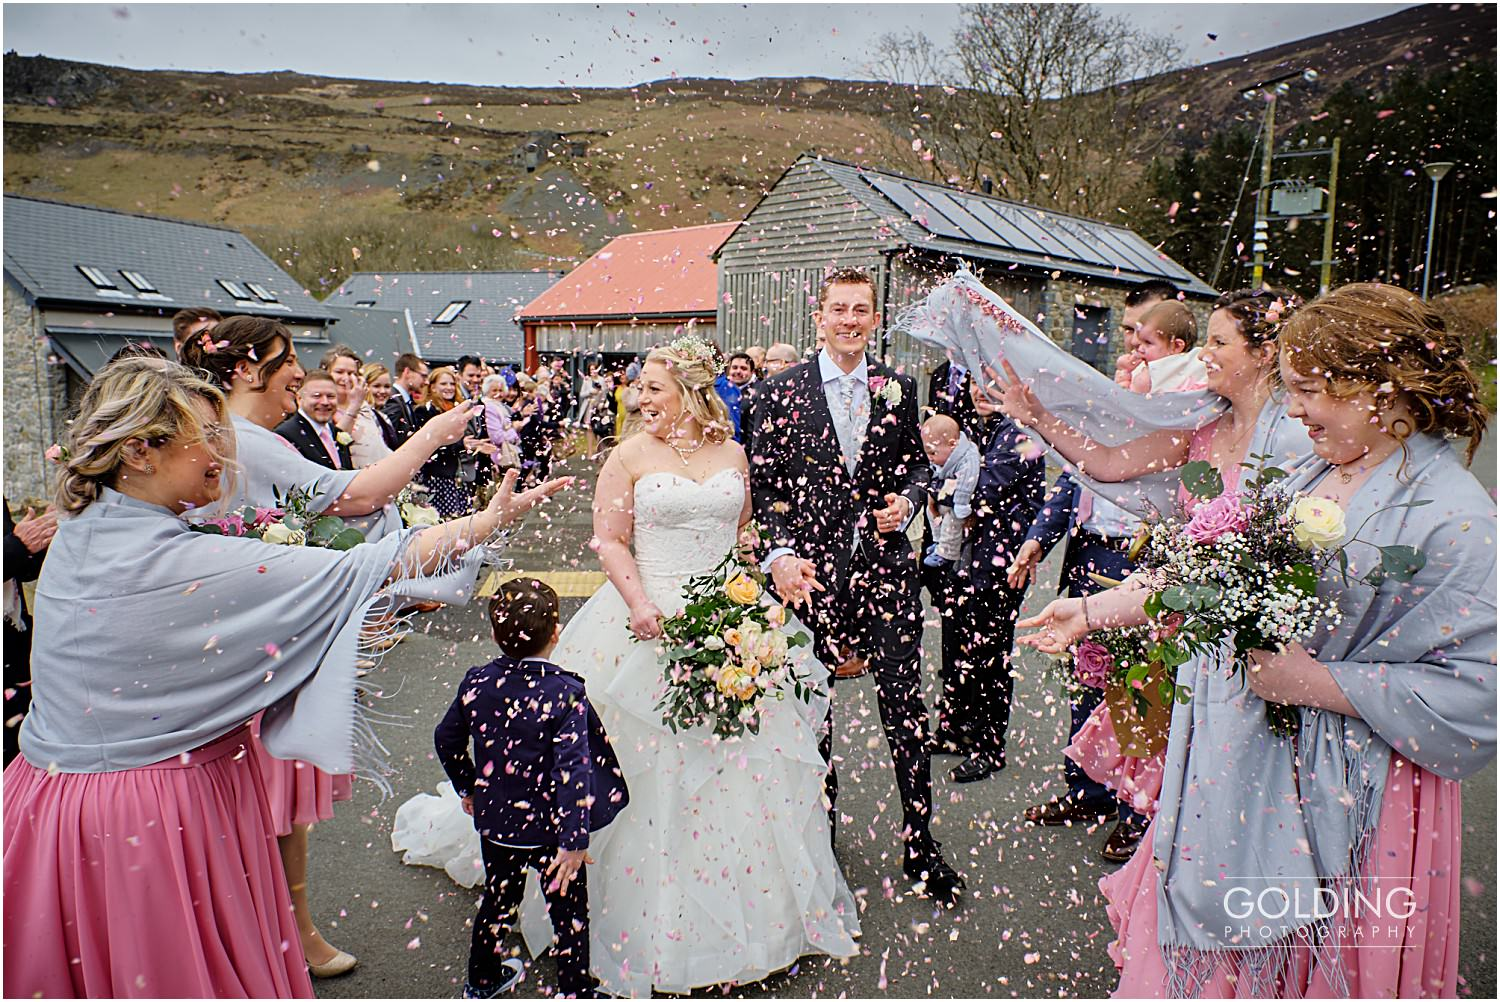 Nant Gwrtheyrn wedding photography - Sara and Will